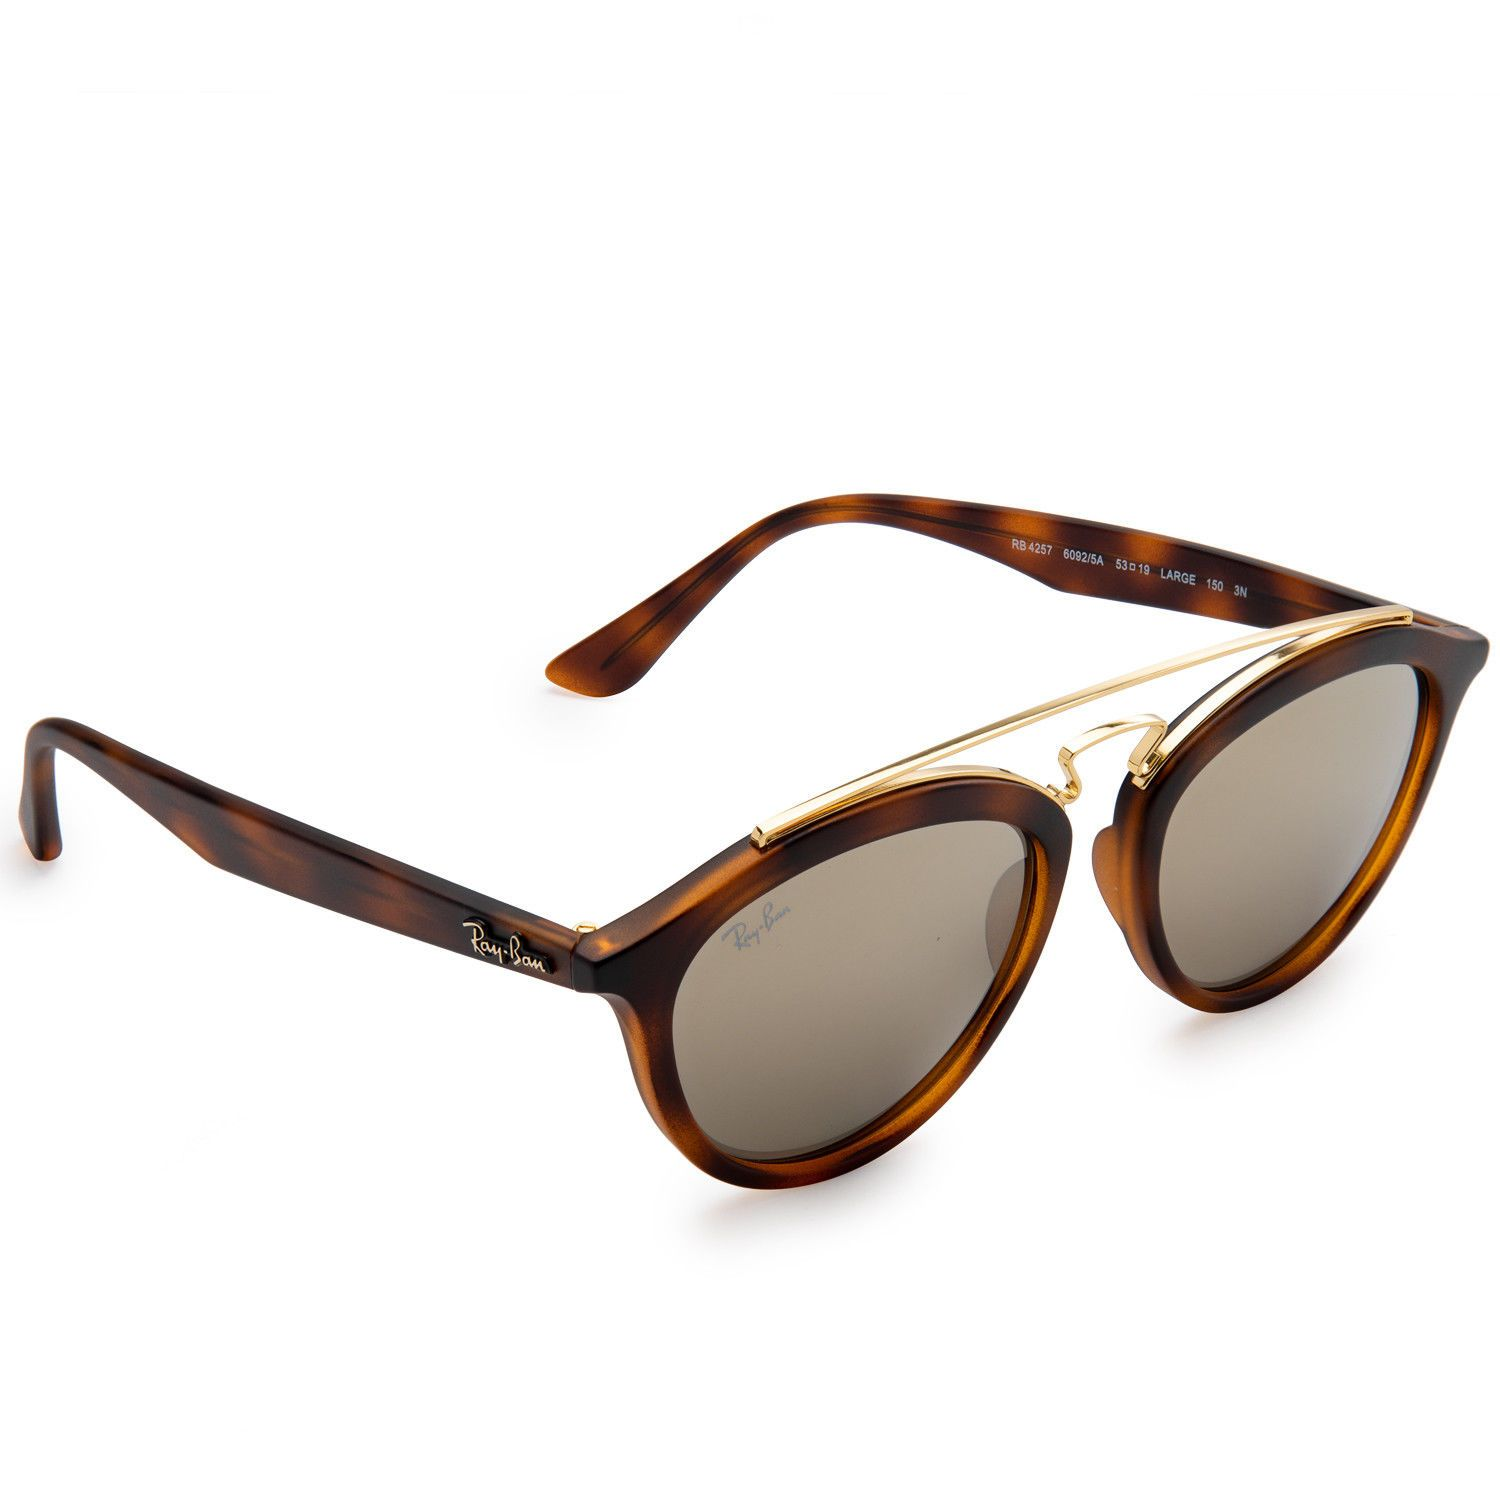 e4bc2da26f Ray-Ban RB4257 Gatsby II Sunglasses (Tortoise Brown and Gold Gold Mirror)